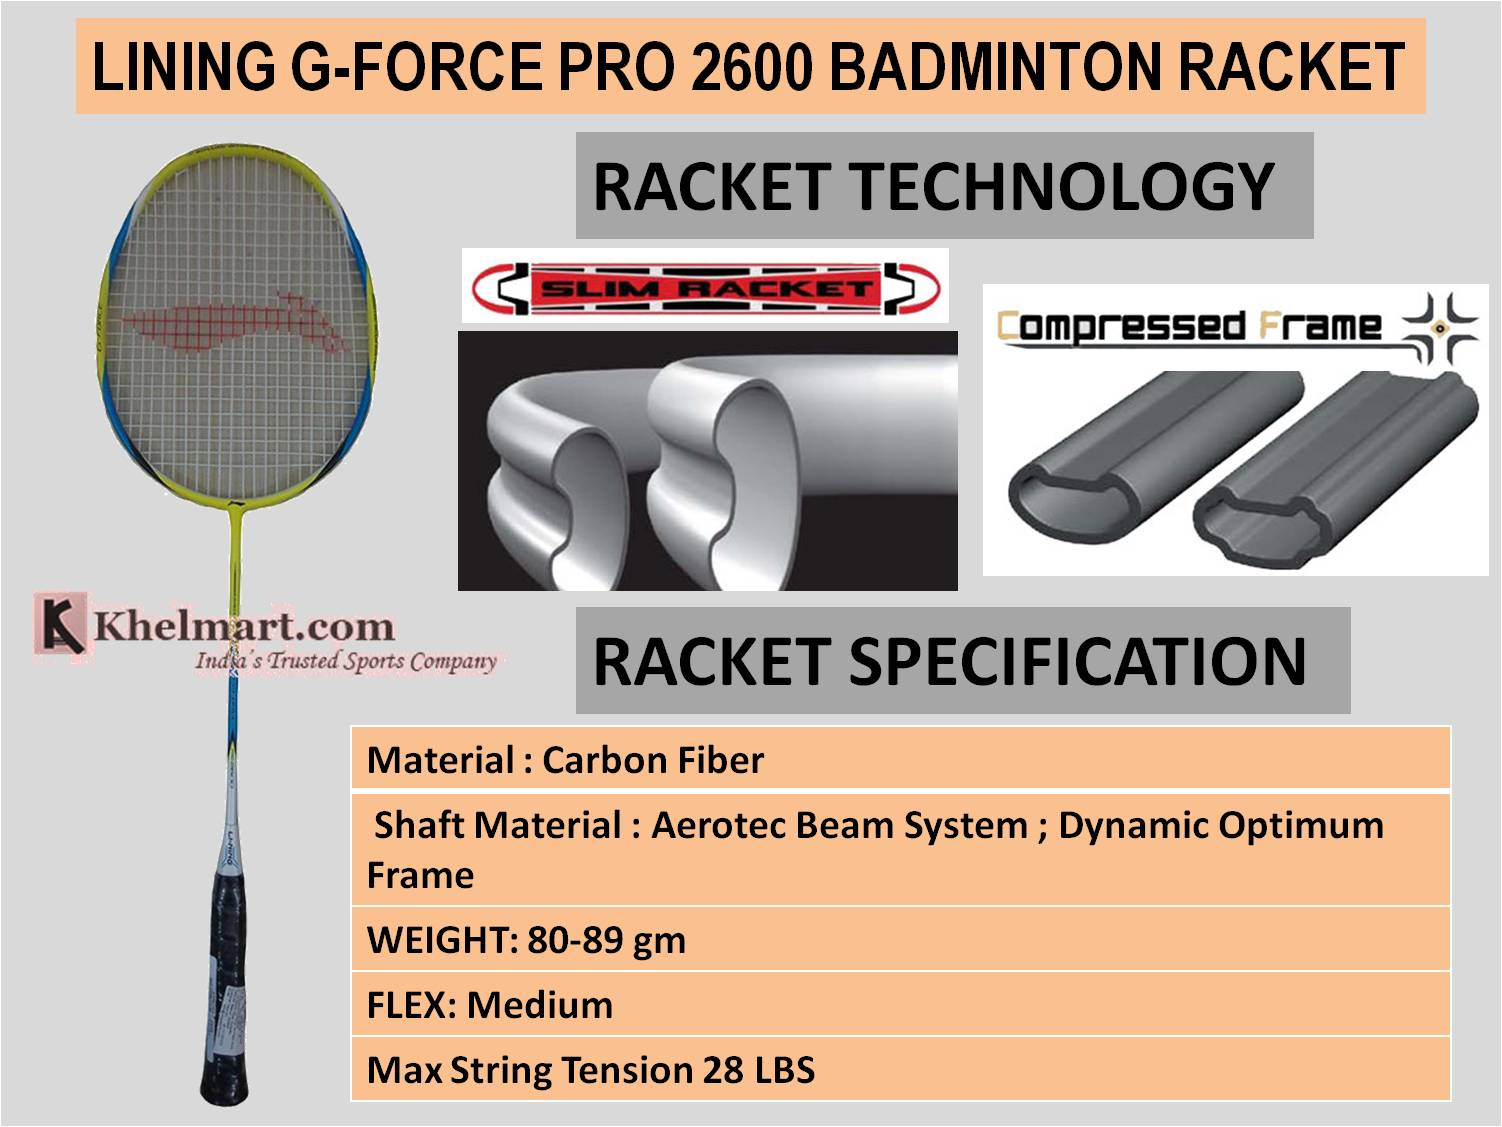 LINING_G_FORCE_PRO_2600_BADMINTON_RACKET.jpg